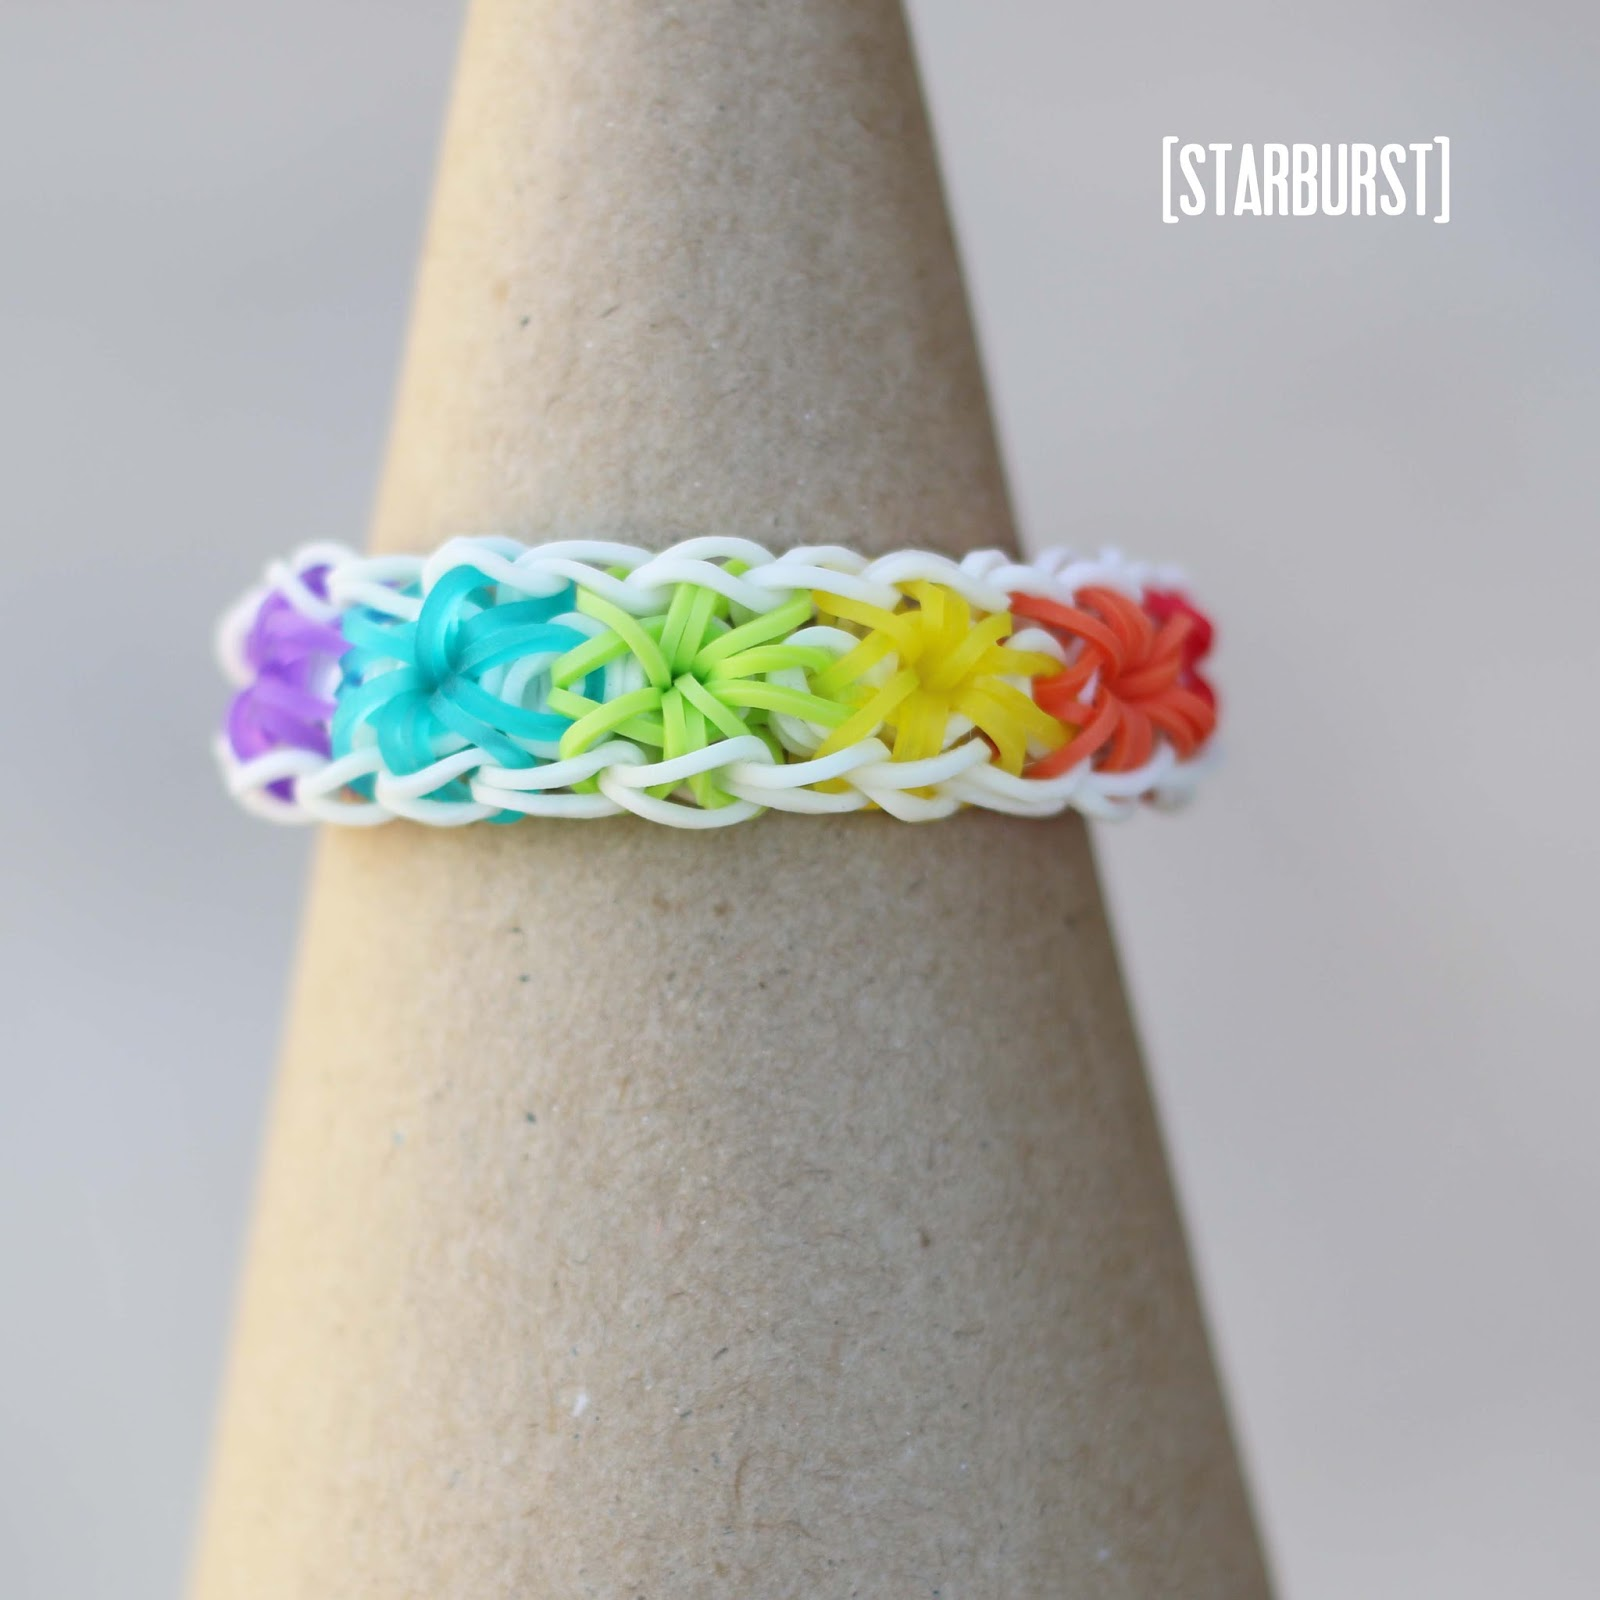 How to make a rubber band bracelet starburst